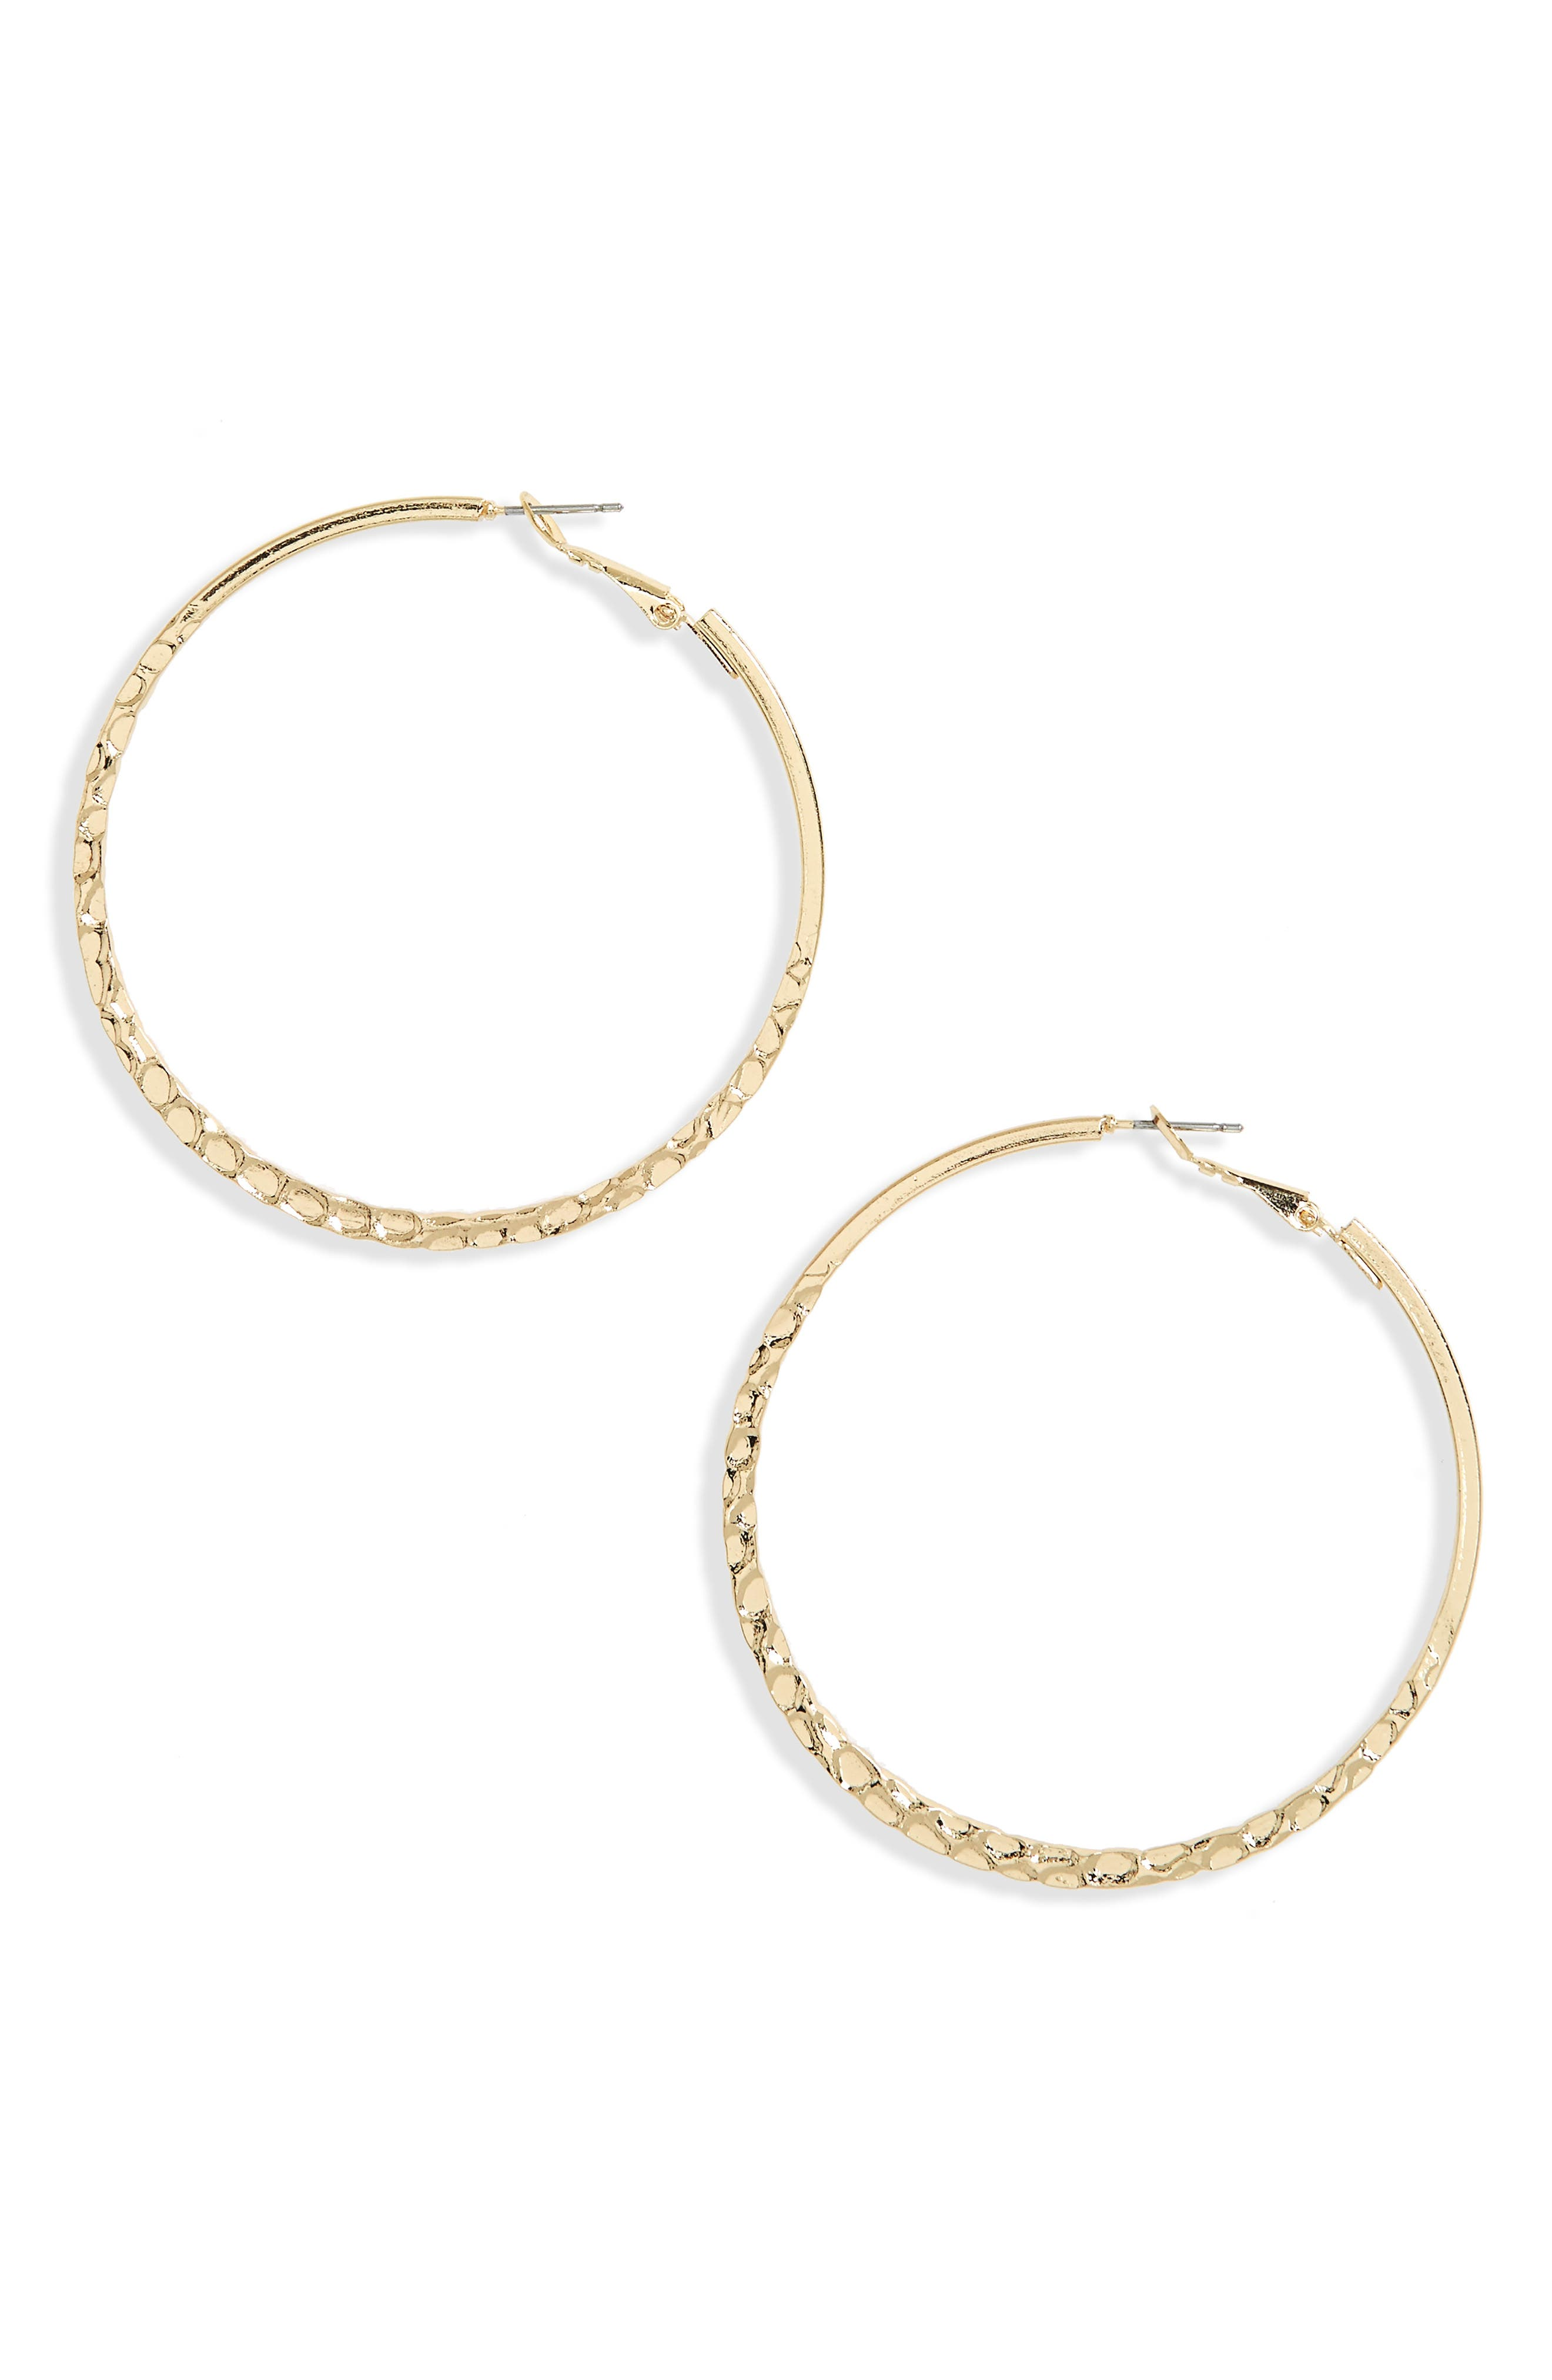 Large Textured Hoop Earrings,                             Main thumbnail 1, color,                             Gold